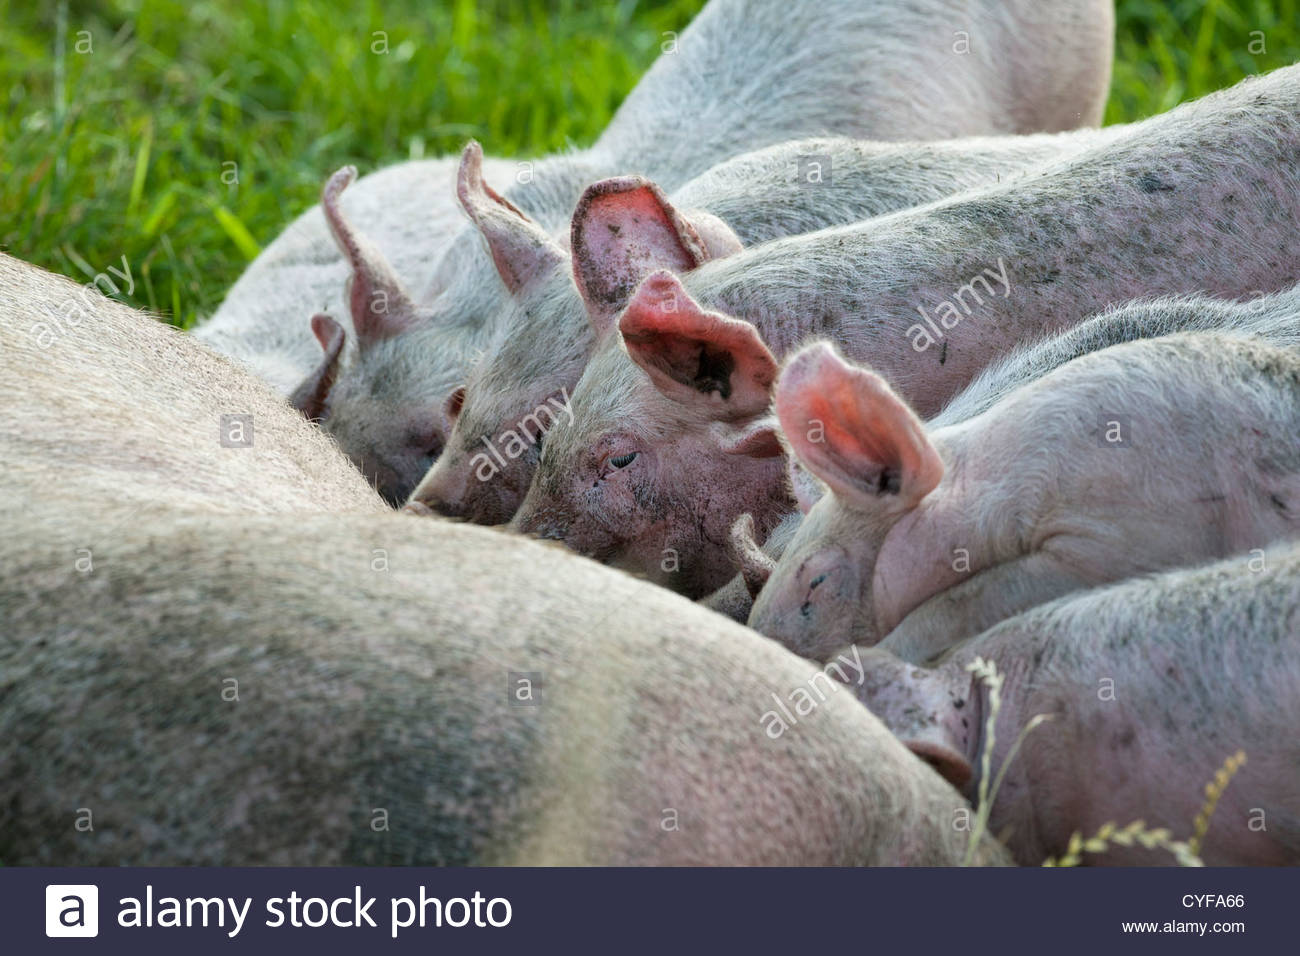 The Netherlands, Kortenhoef, Piglets drinking. - Stock Image